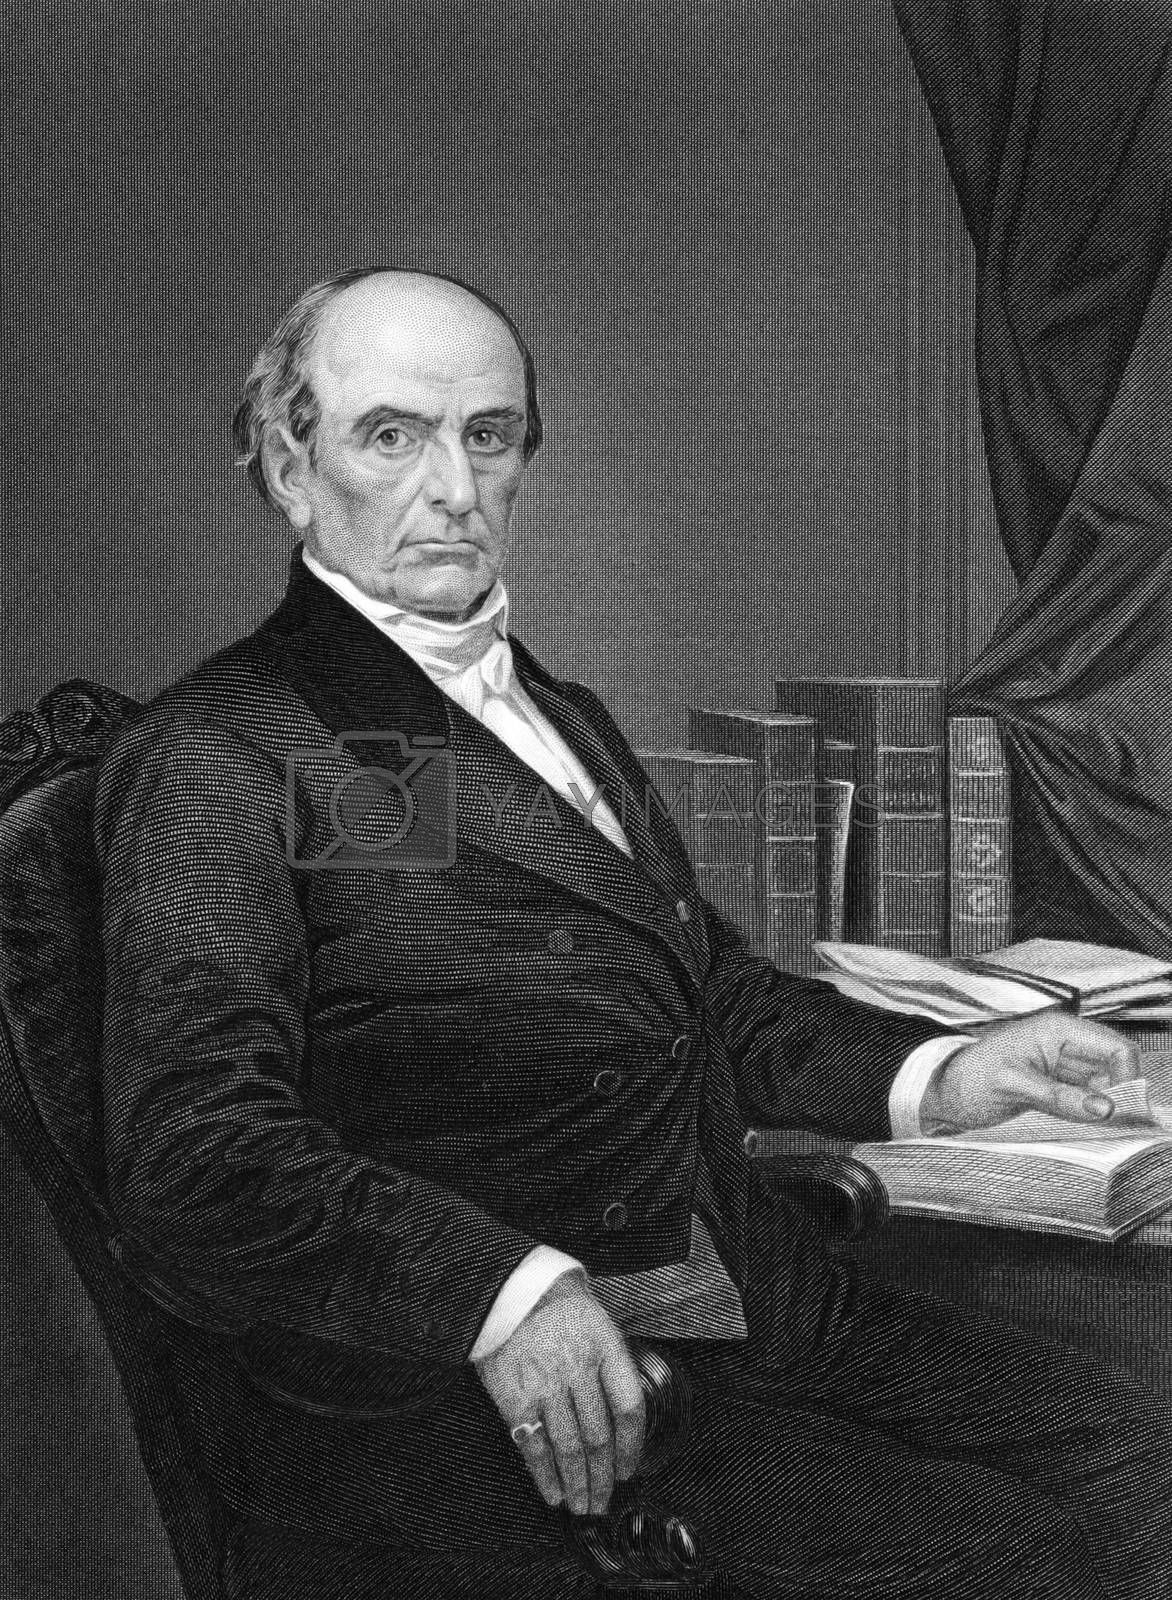 Daniel Webster (1782-1852) on engraving from 1873. Leading American statesman and senator. Engraved by unknown artist and published in ''Portrait Gallery of Eminent Men and Women with Biographies'',USA,1873.